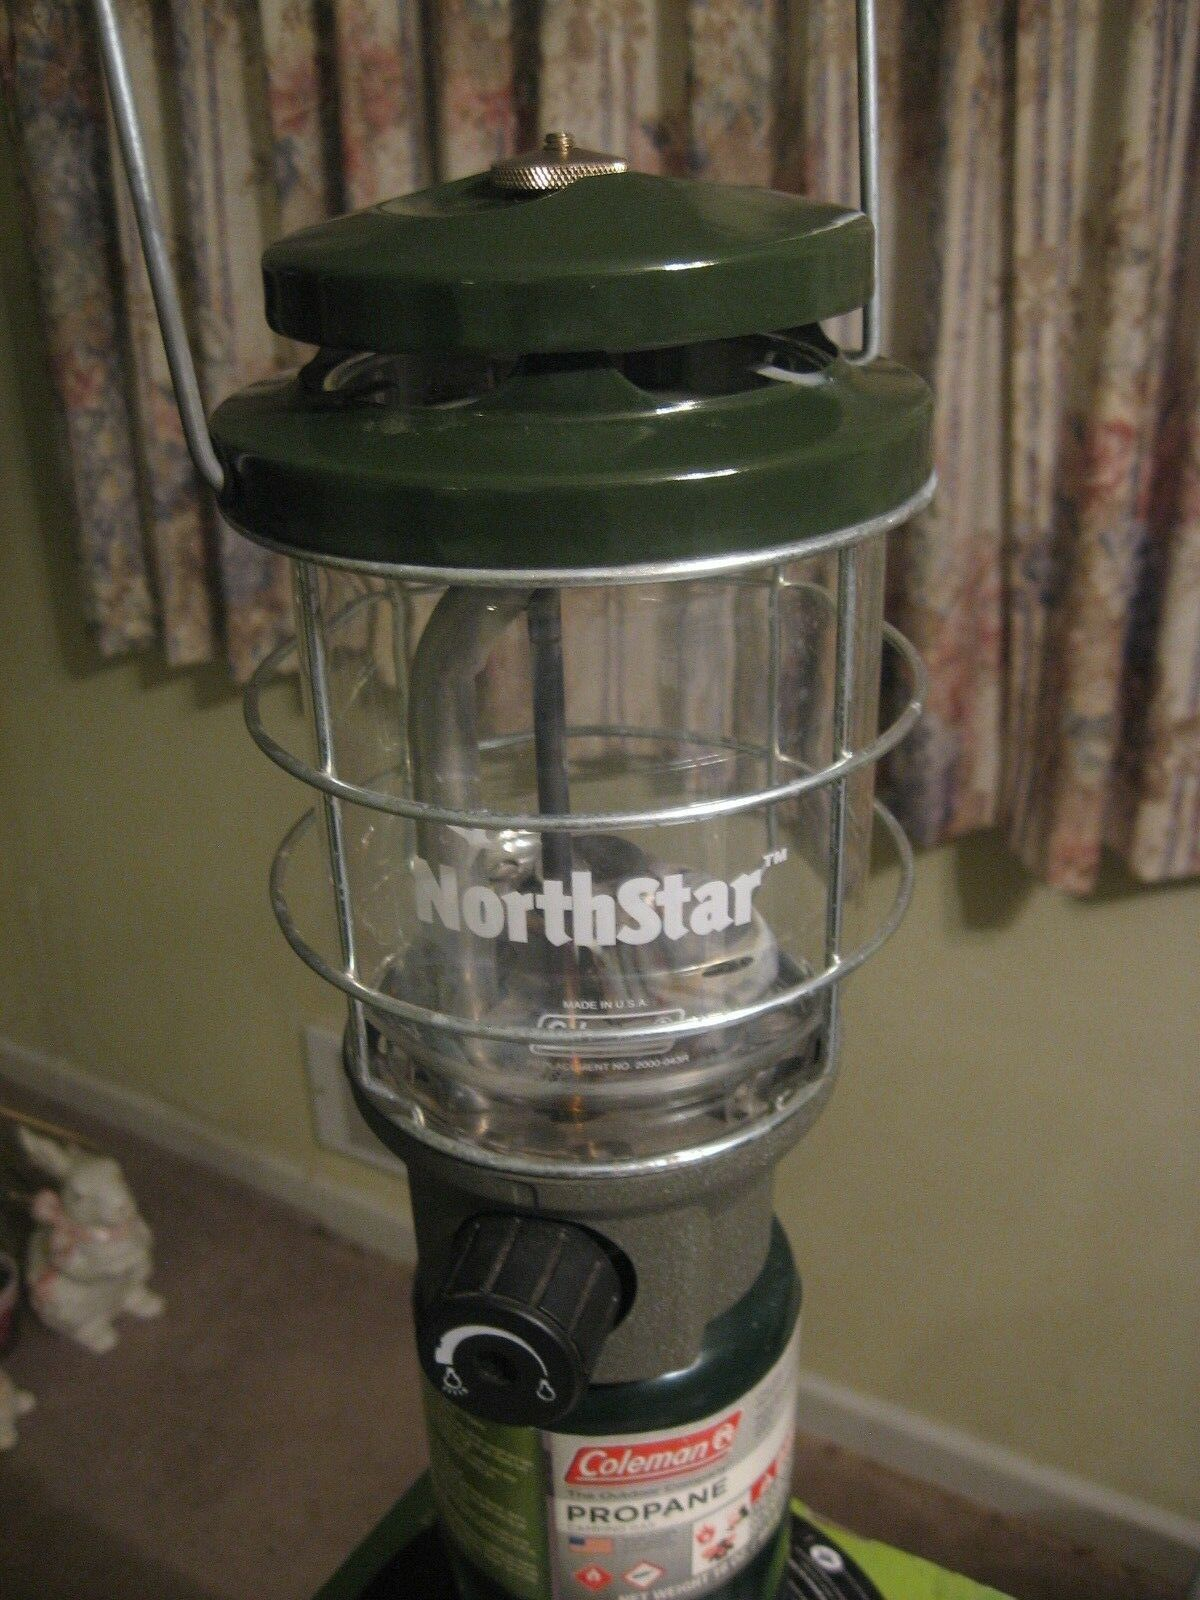 COLEMAN NORTHSTAR  PROPANE LANTERN in Excellent Condition    online shopping and fashion store